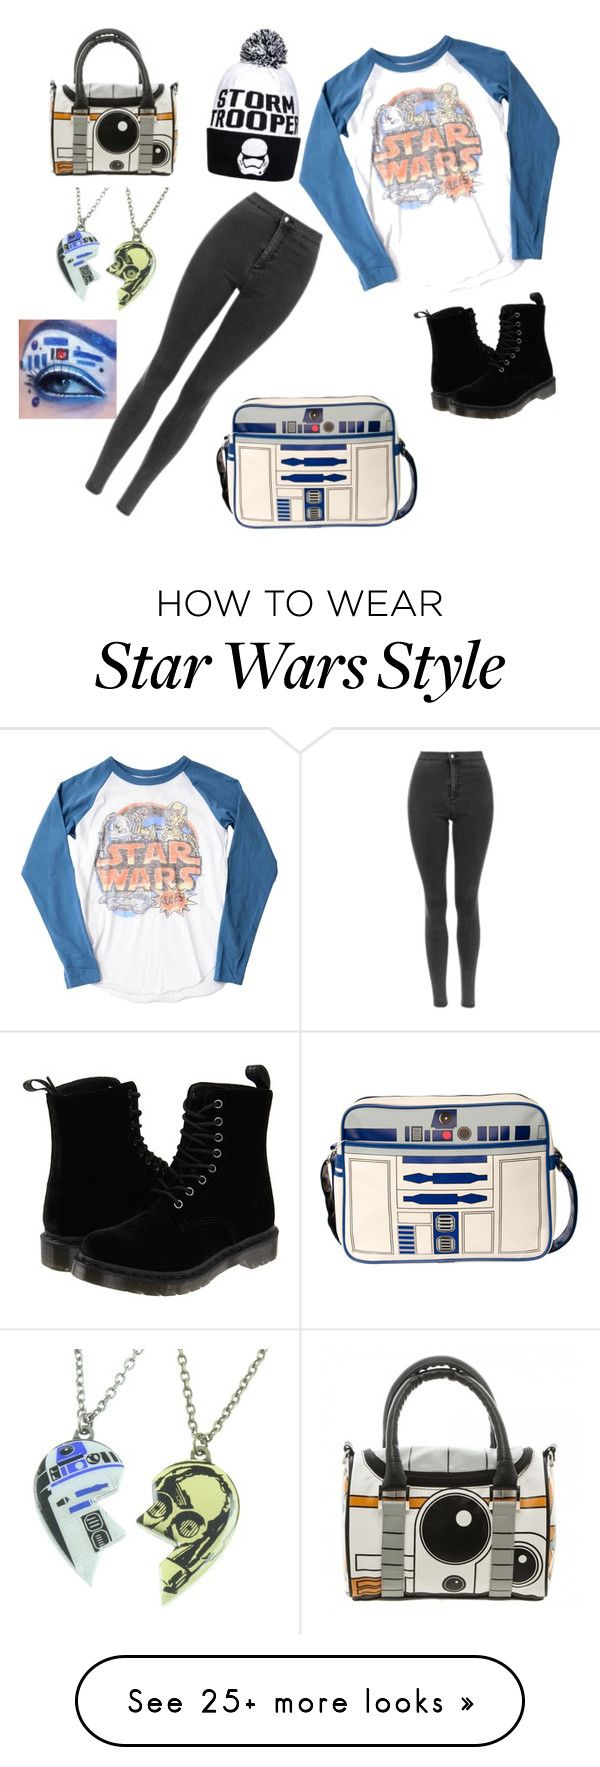 """Going to watch Star Wars so excited "" by wedonthavetolivethisway on Polyvore featuring Junk Food Clothing, Dr. Martens and R2"